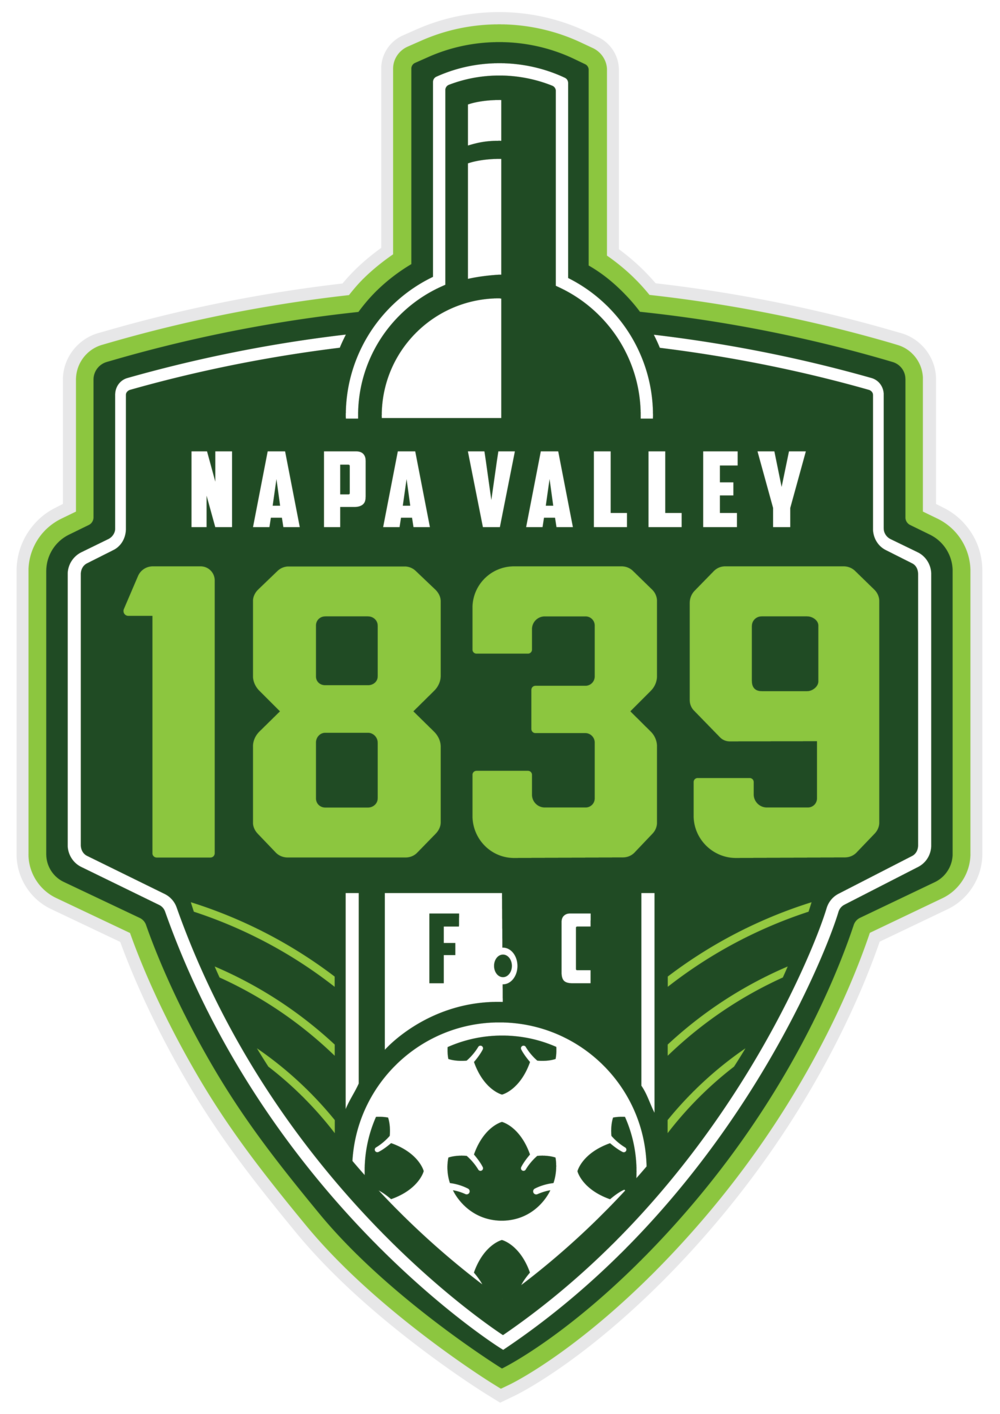 Napa_Valley_1839_Football_Club_logo.png